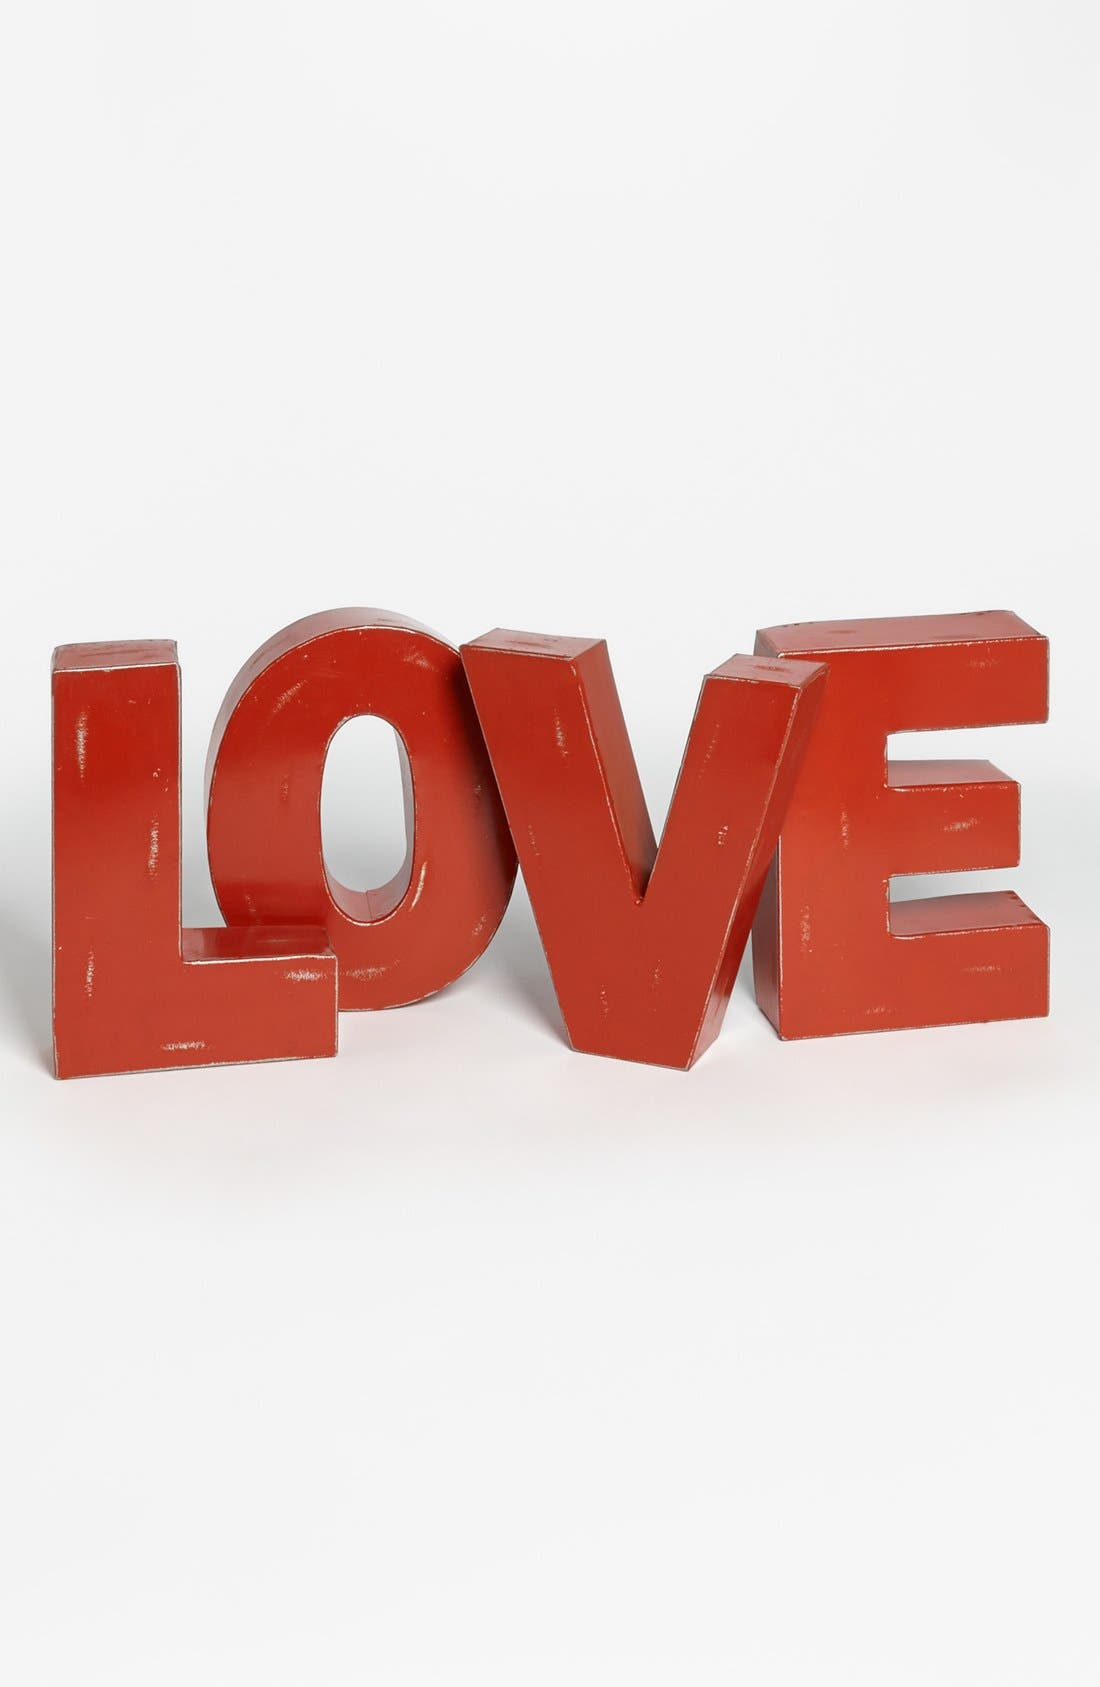 Alternate Image 1 Selected - Foreside 'Love' Decorative Metal Letters